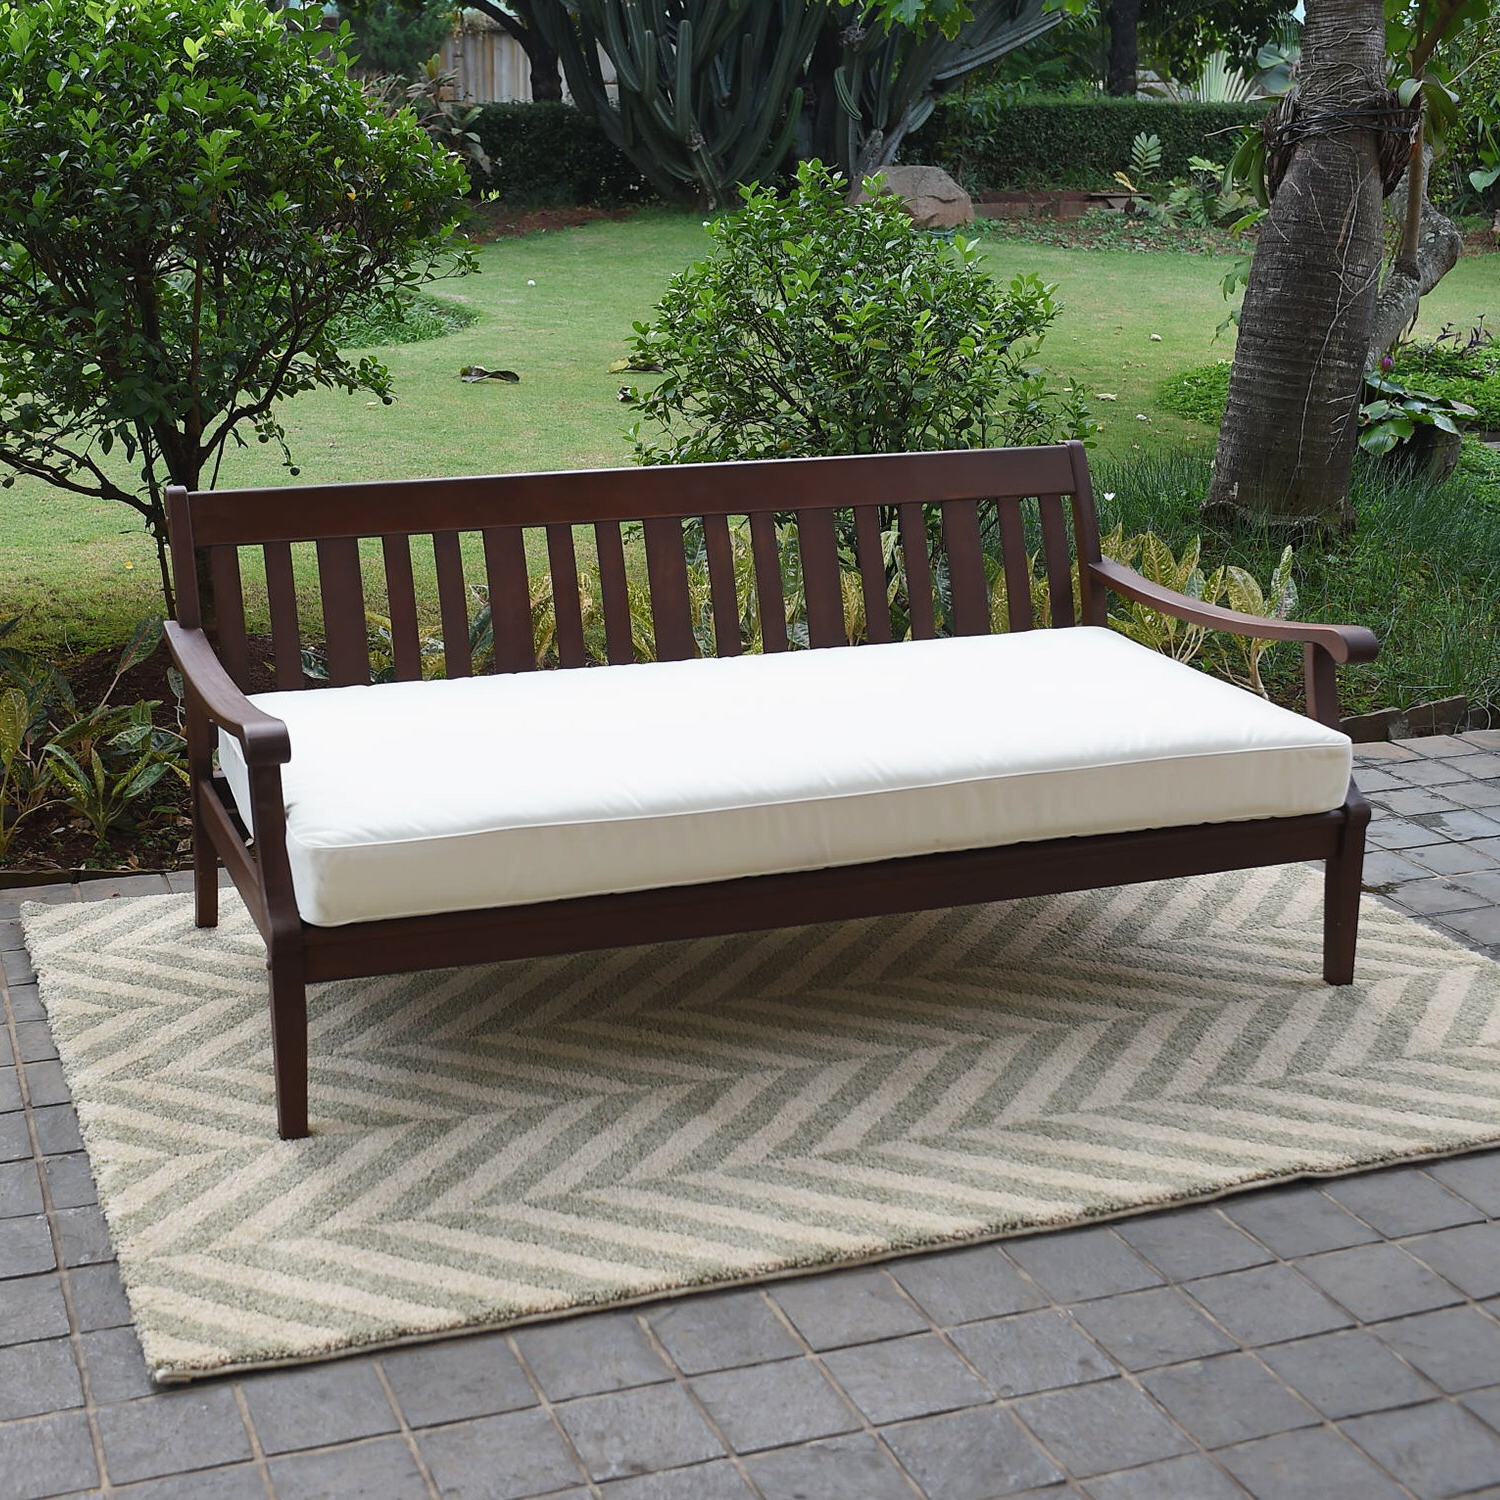 Famous Furniture: Cool Patio Daybed With Alluring Cushions For In Dowling Patio Daybeds With Cushion (View 8 of 25)